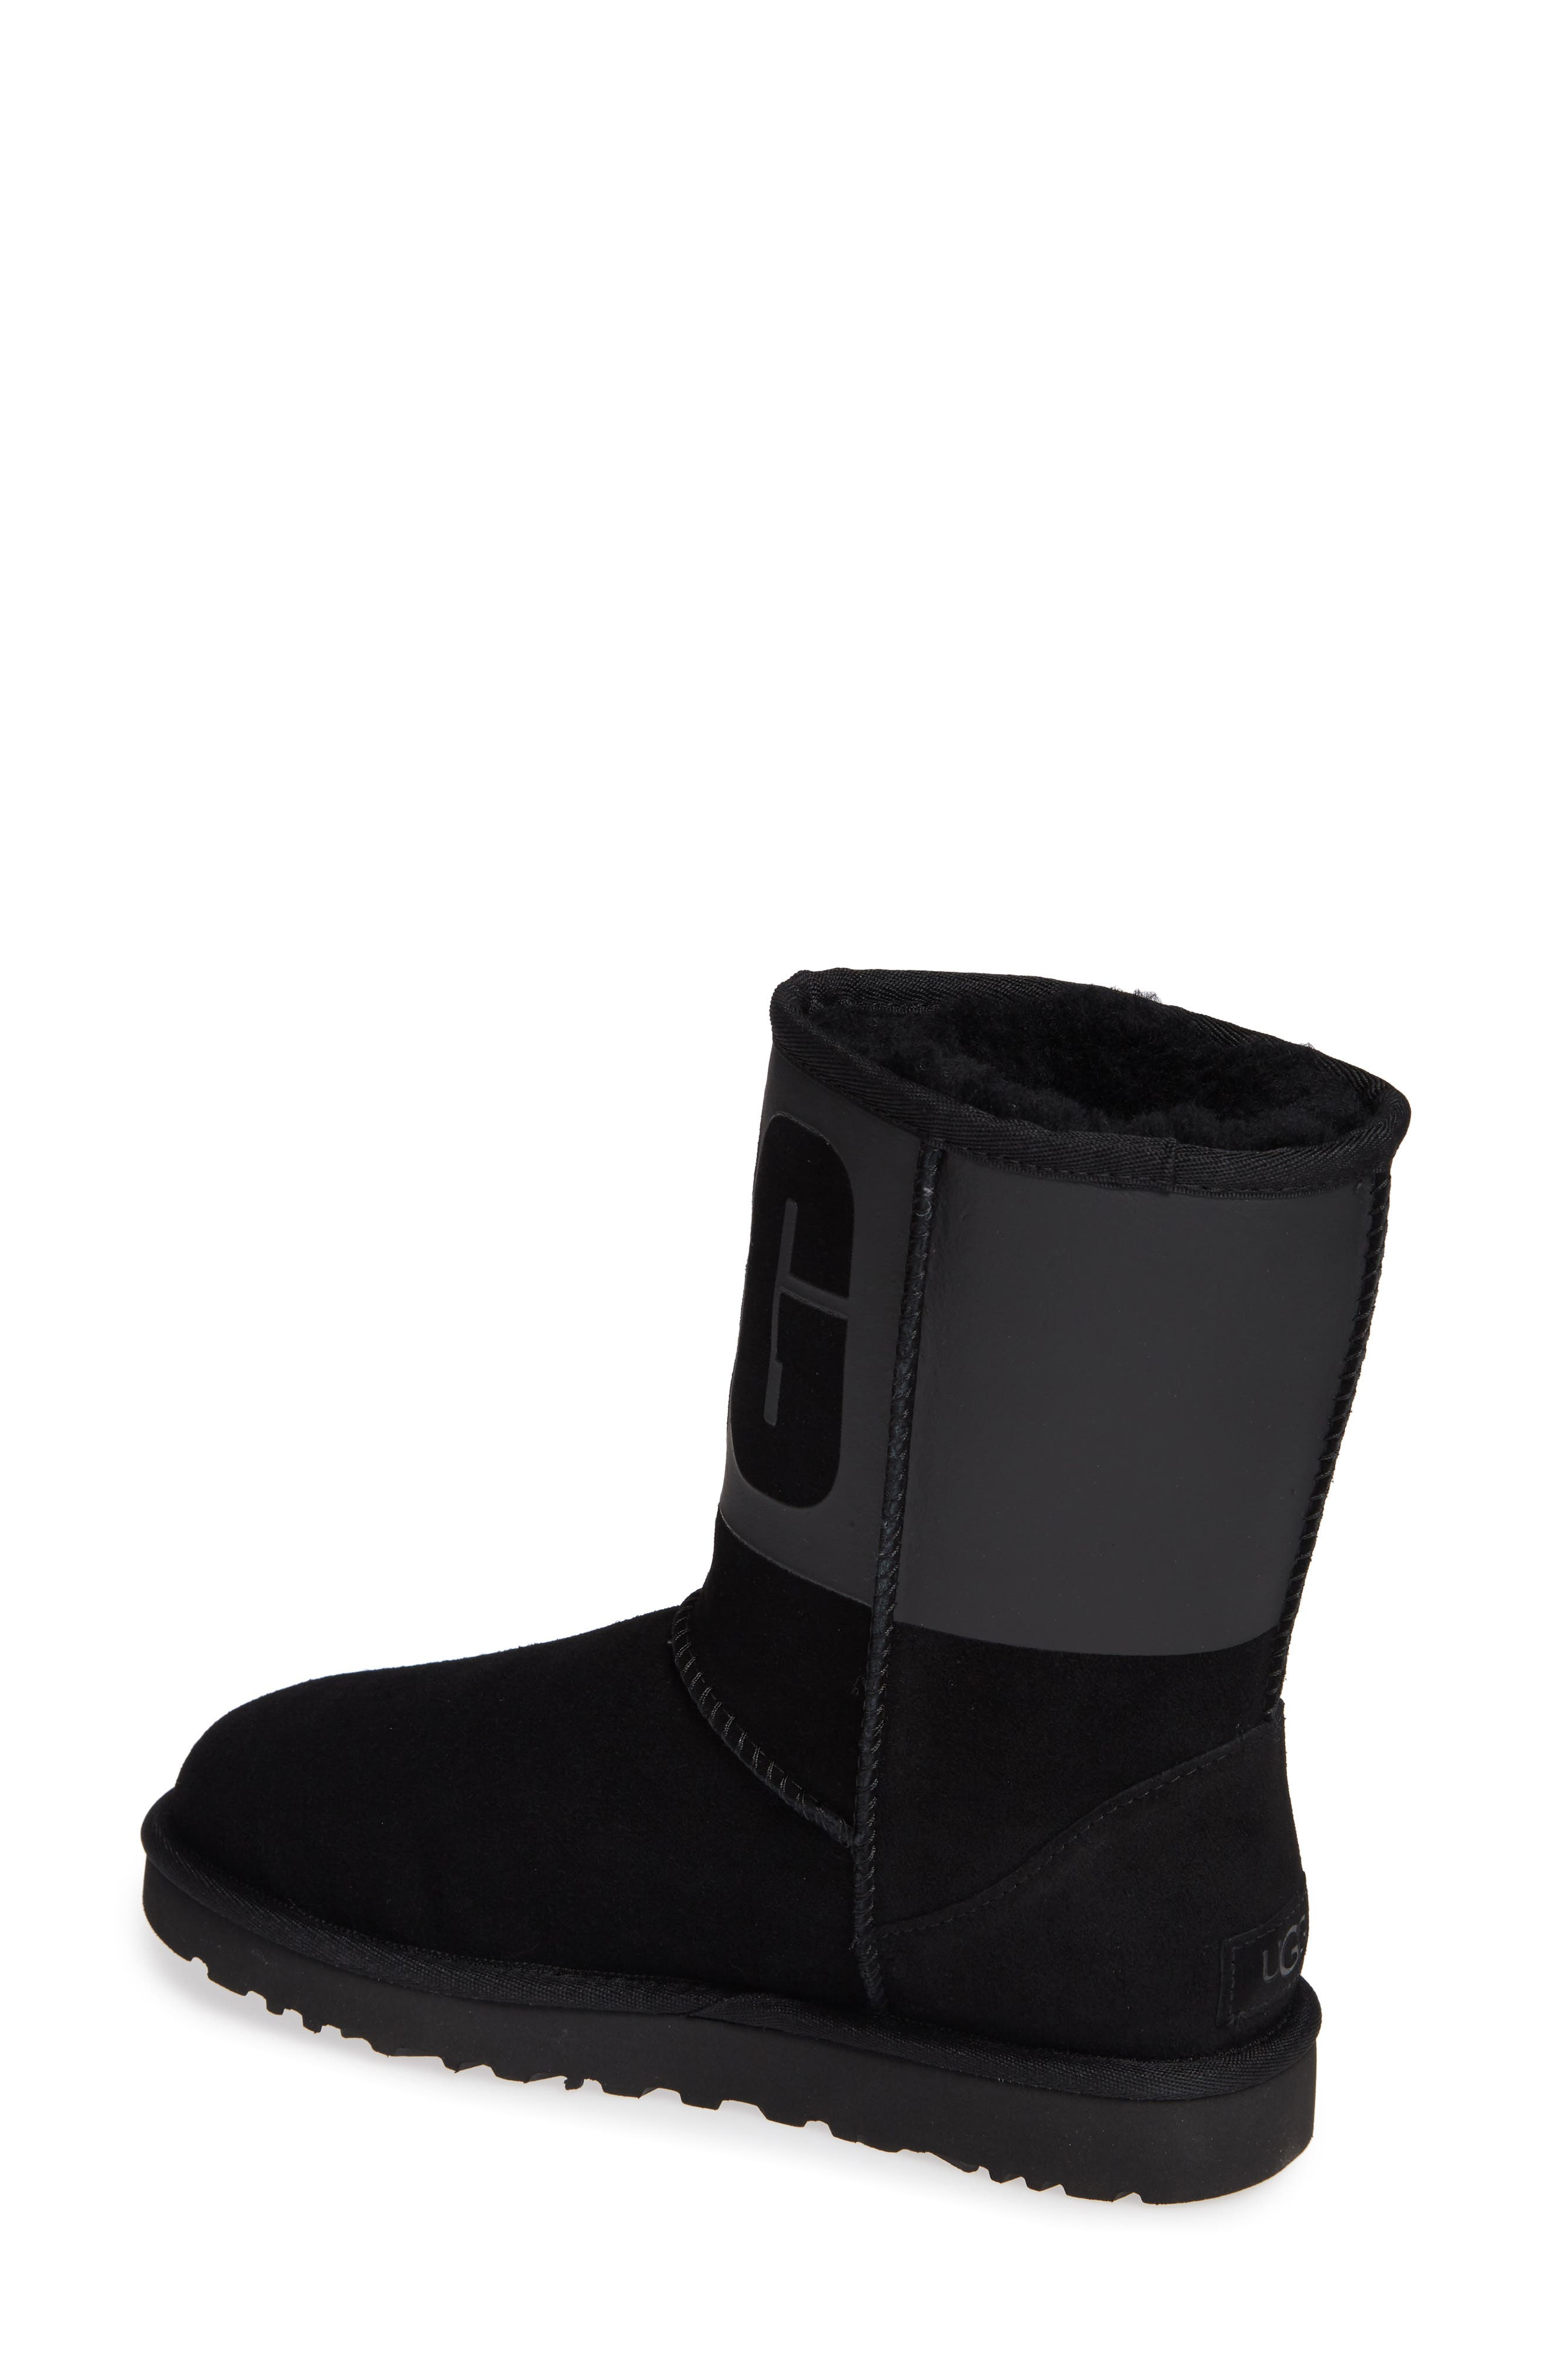 Classic Short Rubber Boot,                             Alternate thumbnail 2, color,                             001